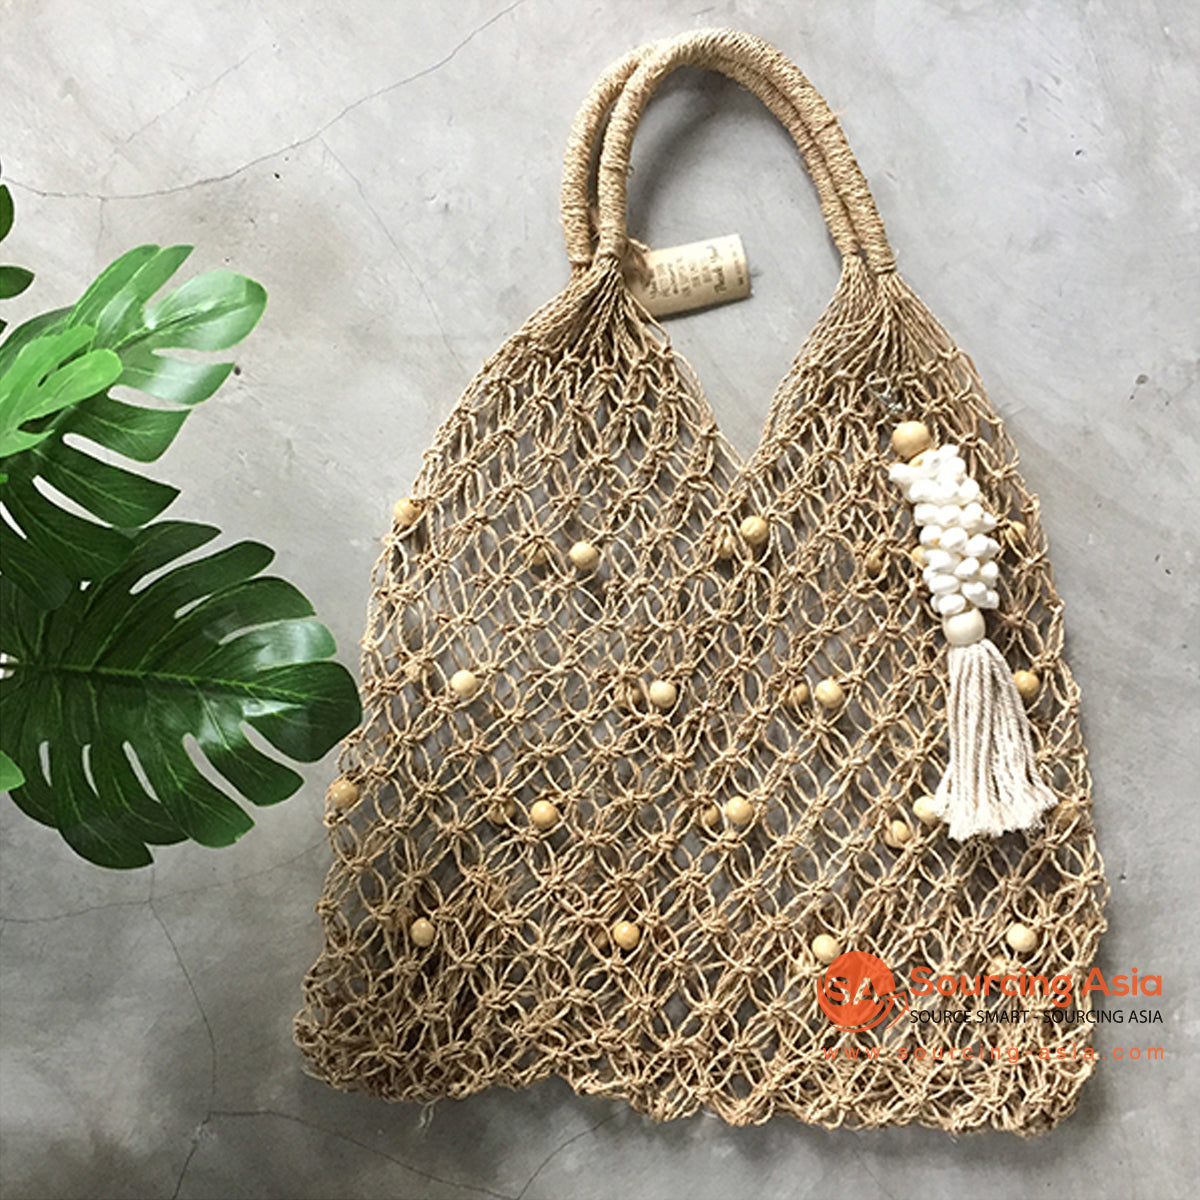 SHL210 NATURAL AGEL TOTE BAG WITH WOODEN BEADS DECORATION